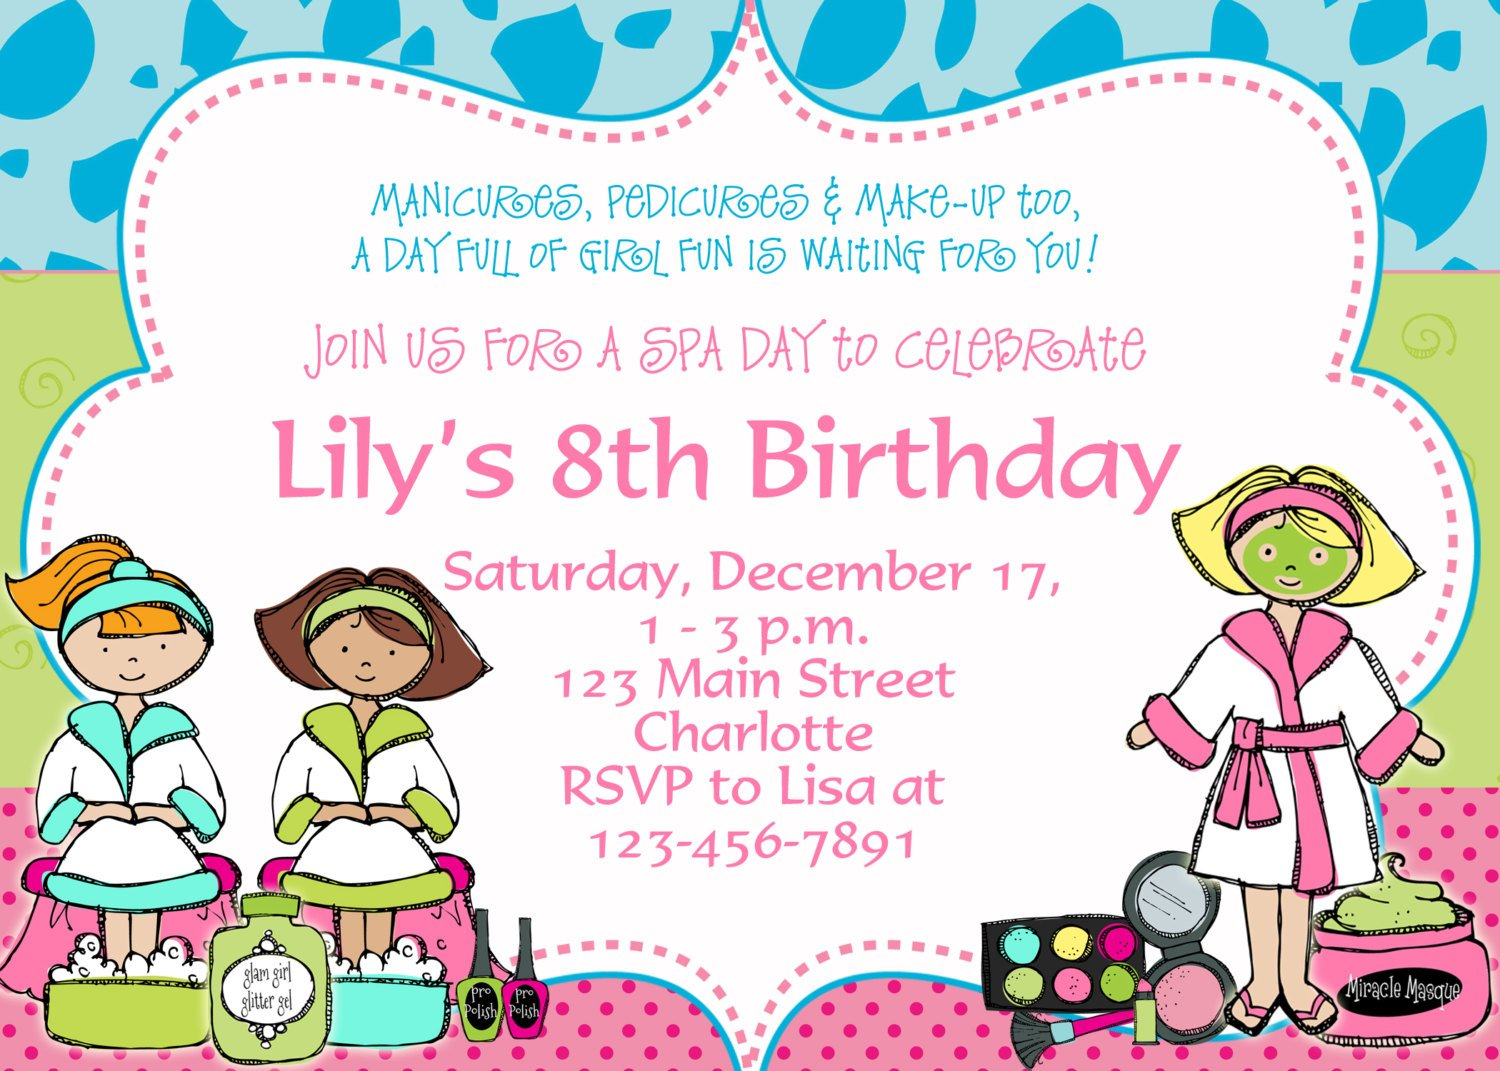 birthday party invitation templates drevio invitations design printable spa birthday party invitation templates